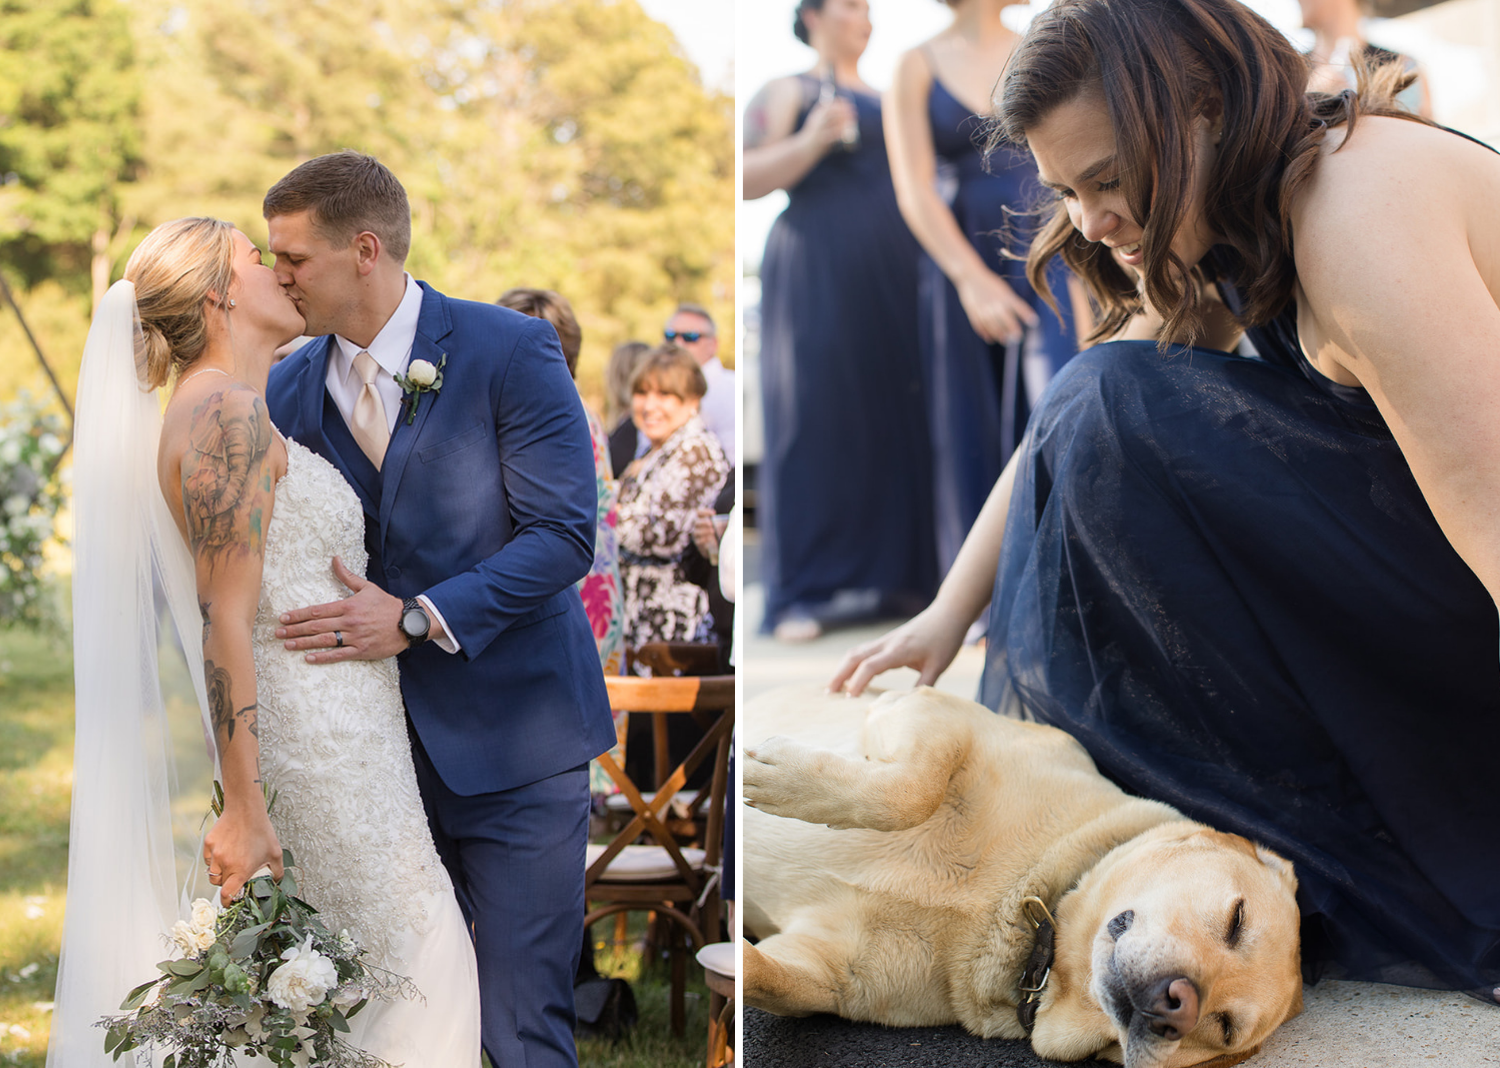 bride and groom share a kiss as they walk down the aisle, dog at the wedding lays down for belly rubs